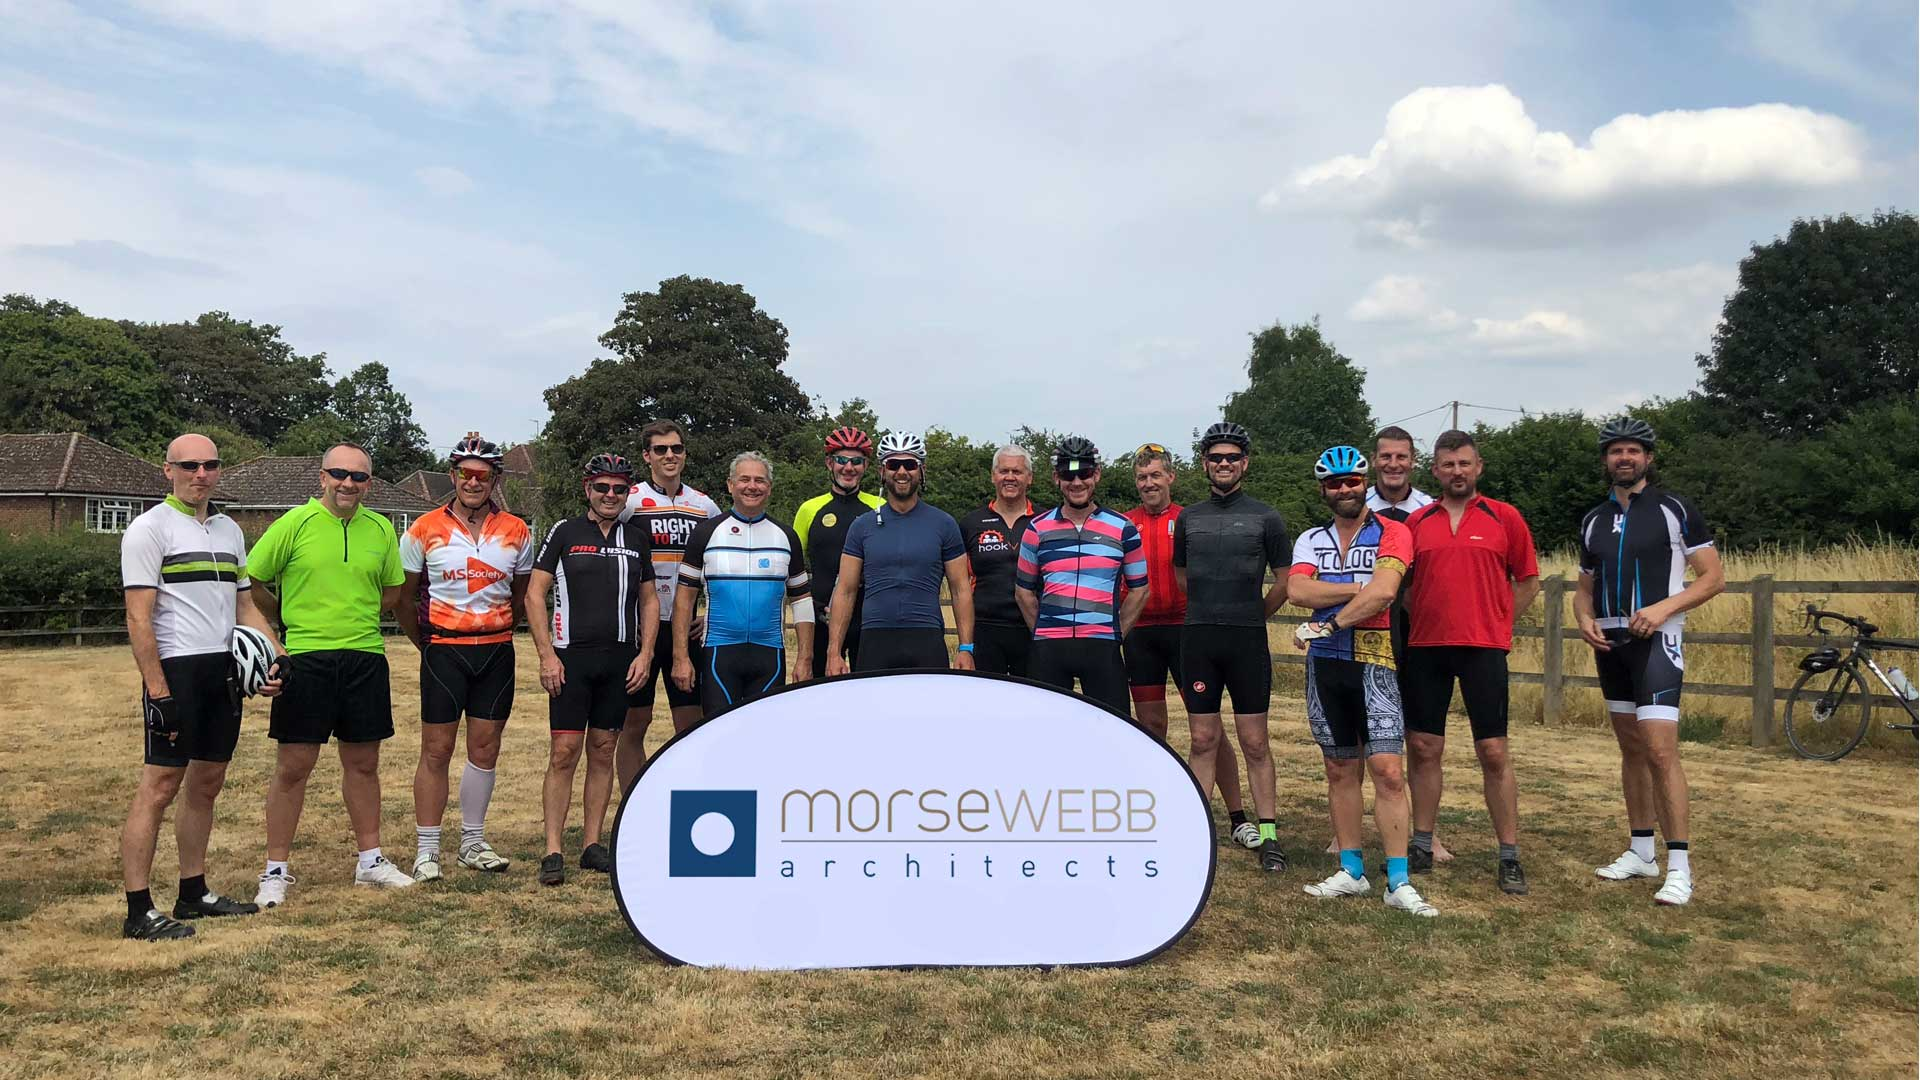 Morse Webb cycle event